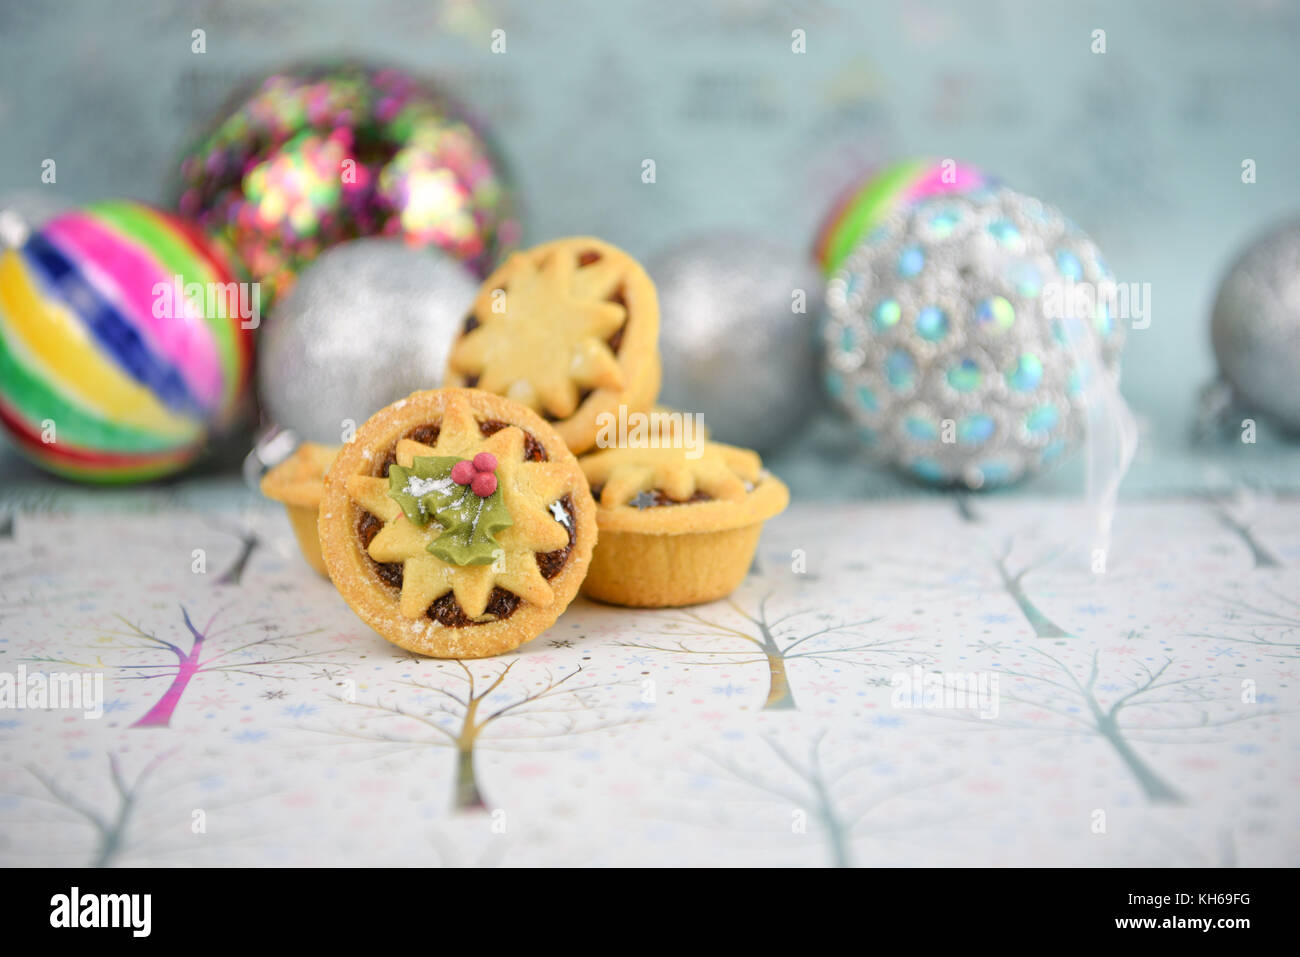 Christmas Food Photography Image Of Traditional Mince Pies With Tree